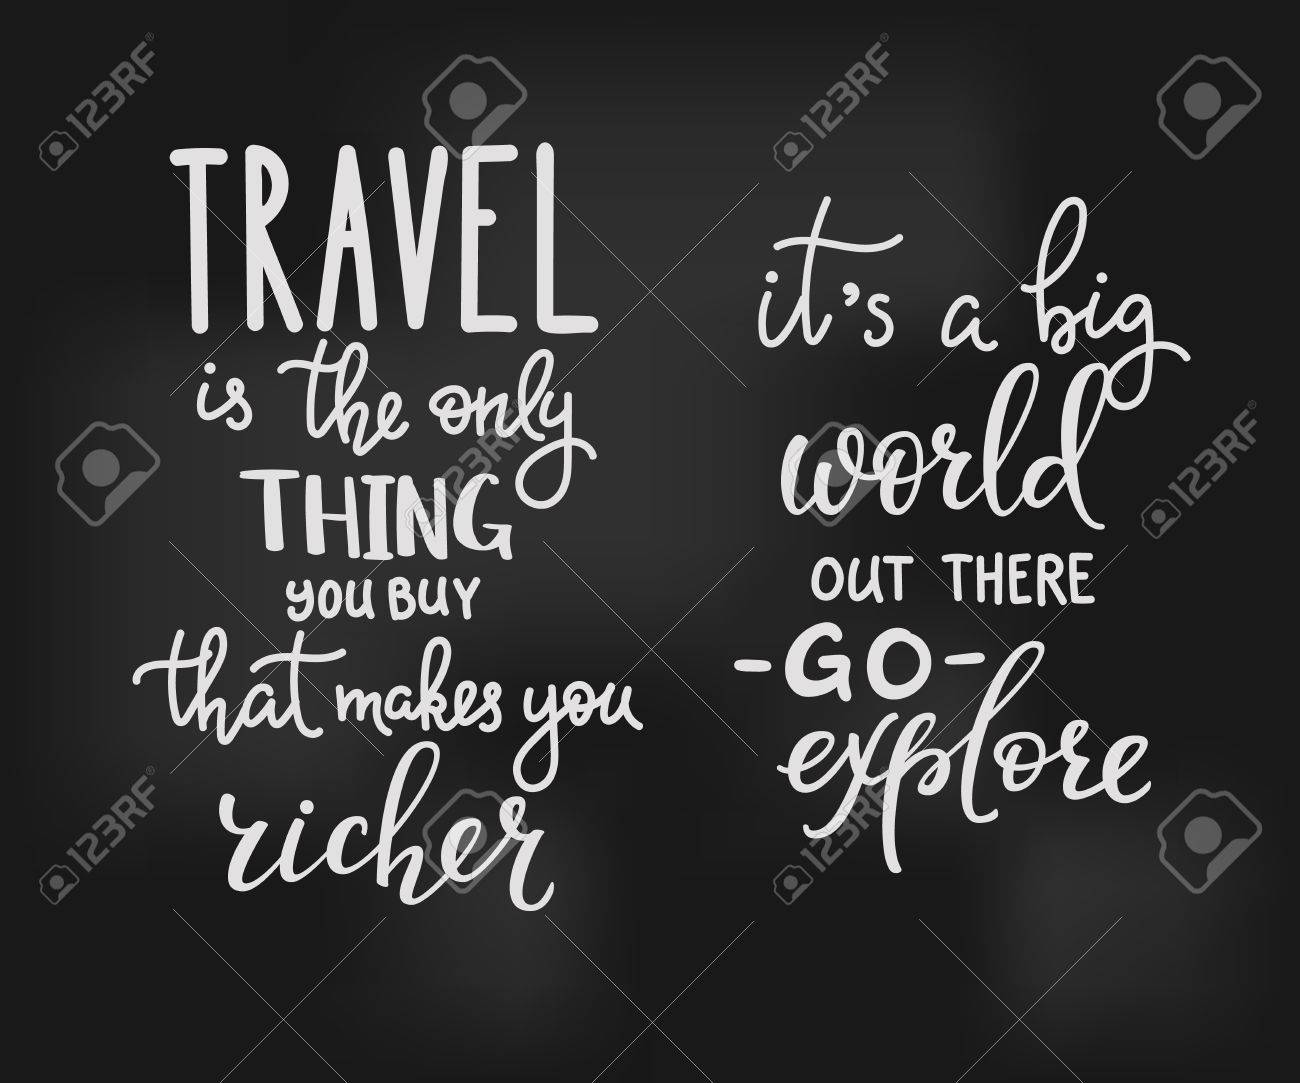 Explore The World Quotes Travel Inspiration Quotes Letteringtravel Is The Only Thing